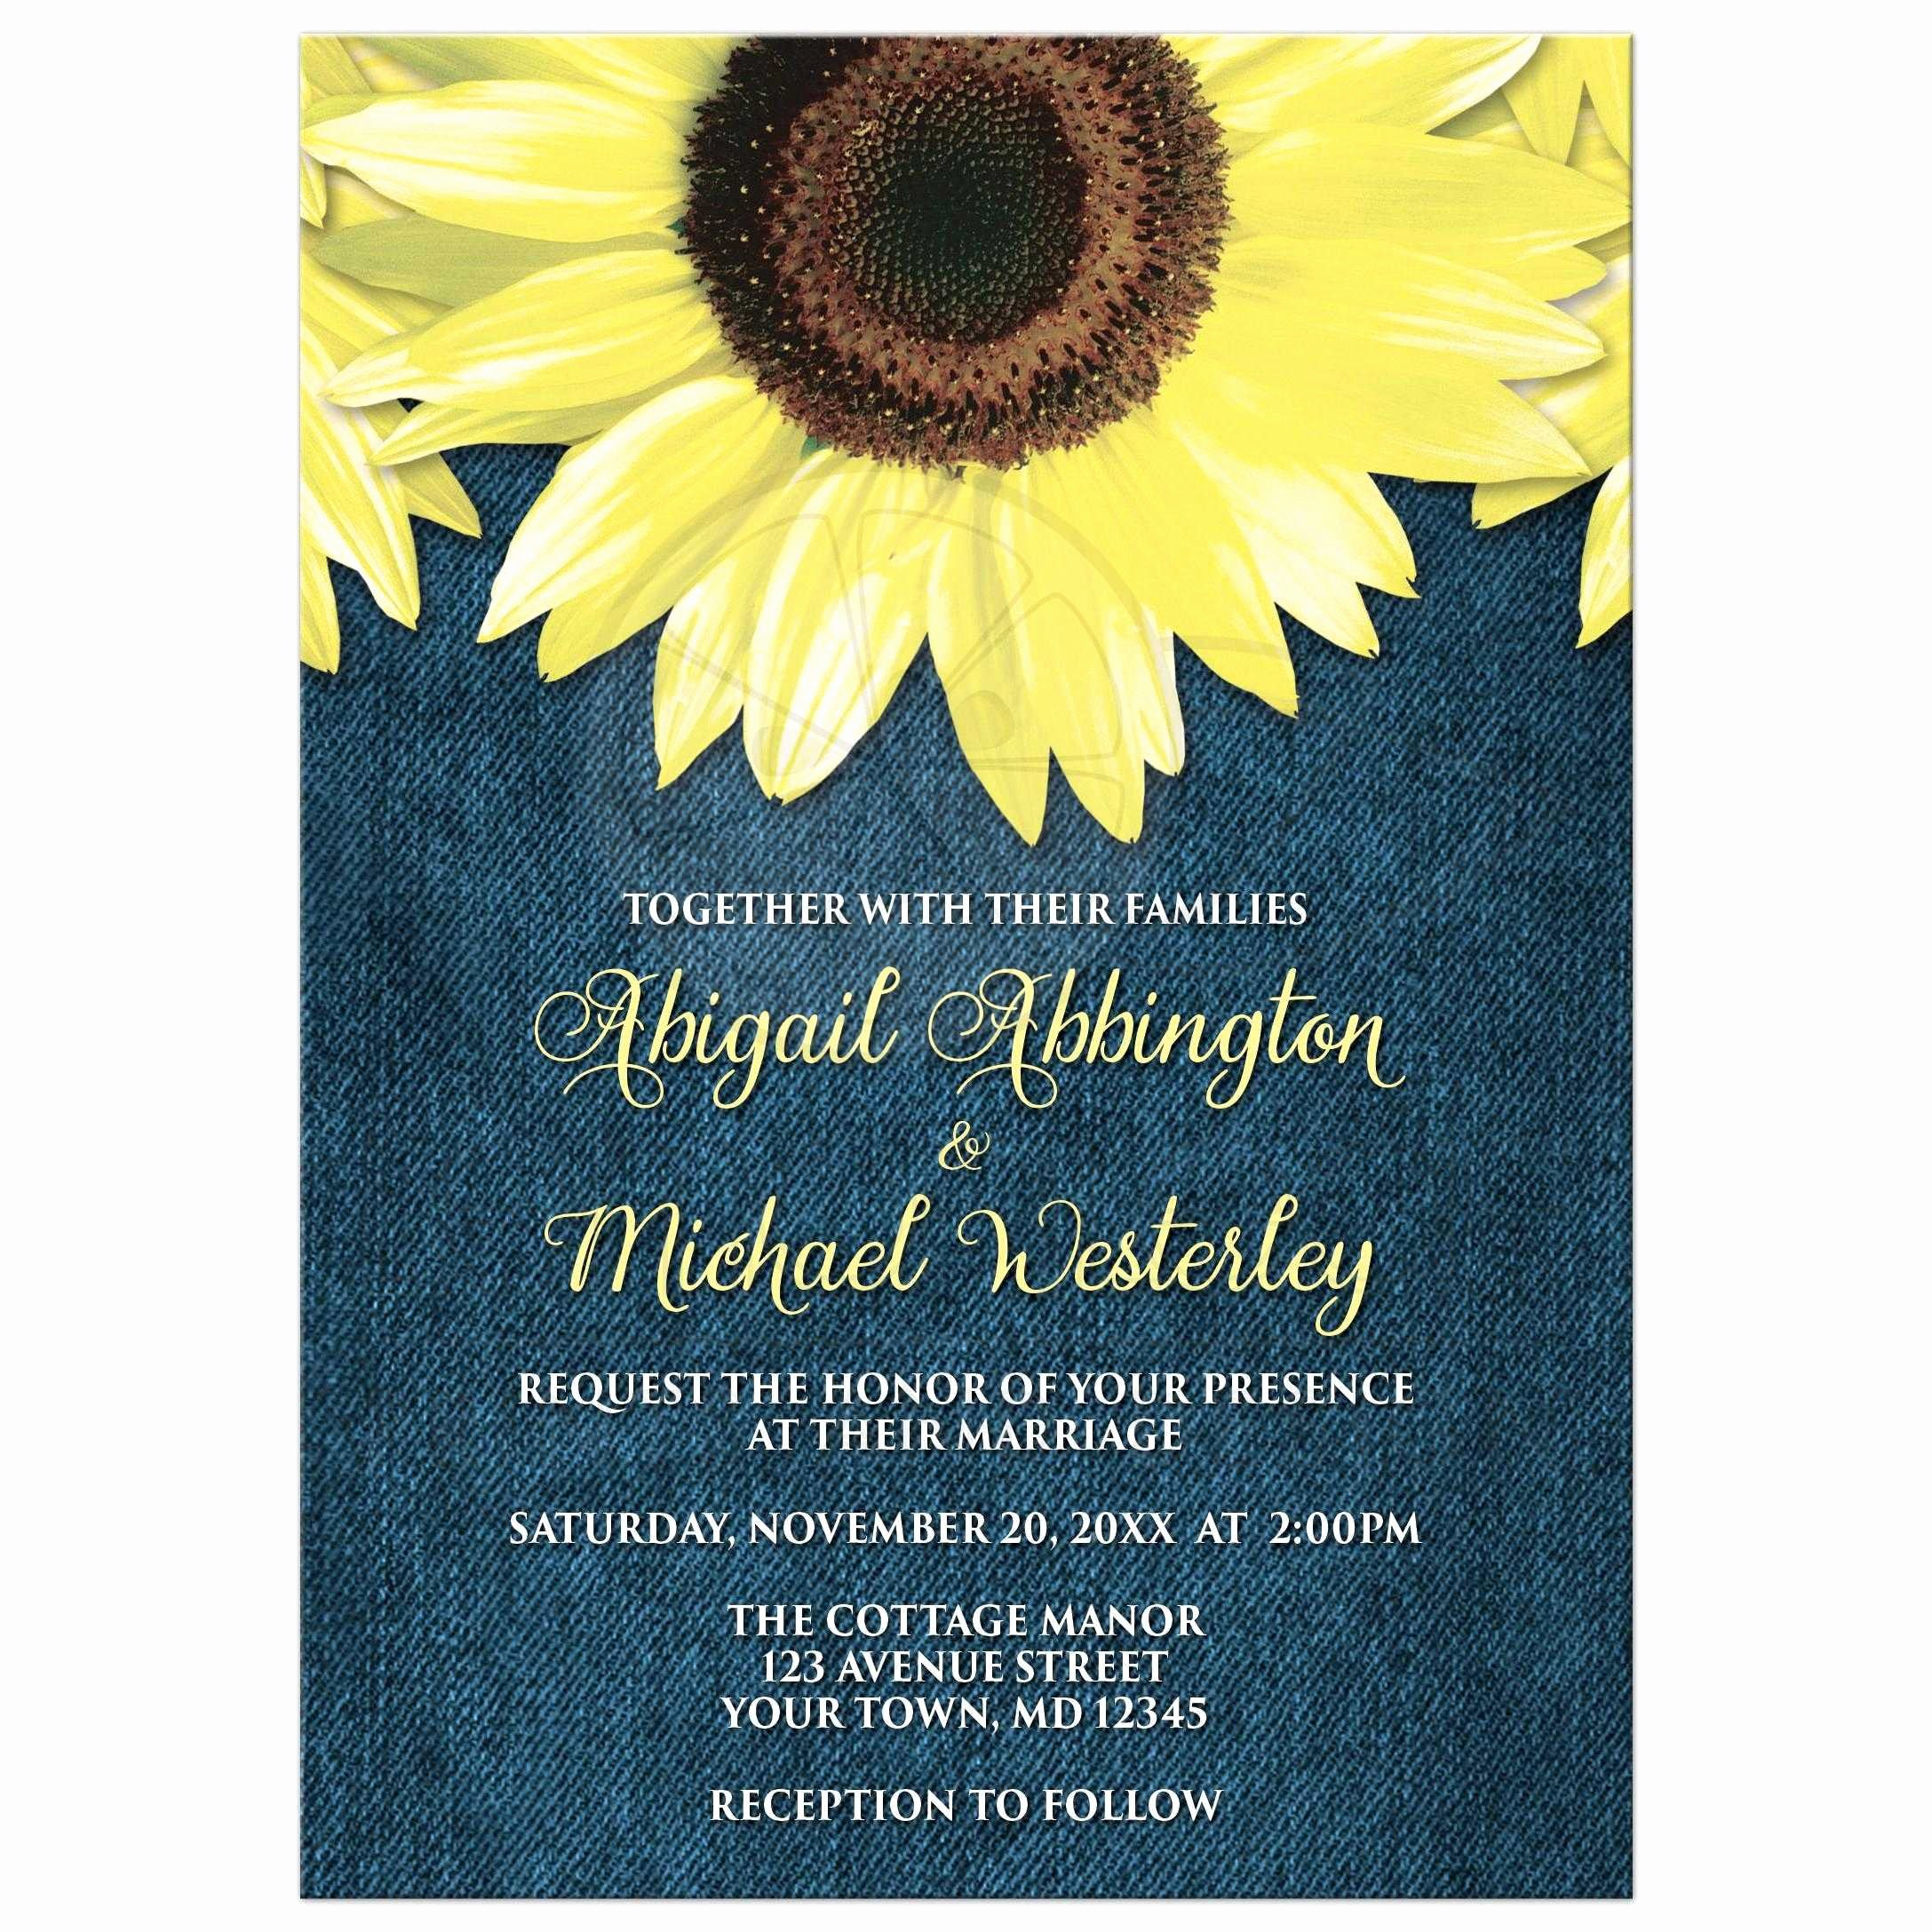 Rustic Sunflower Wedding Invitations Unique Wedding Invitations Rustic Sunflower and Denim